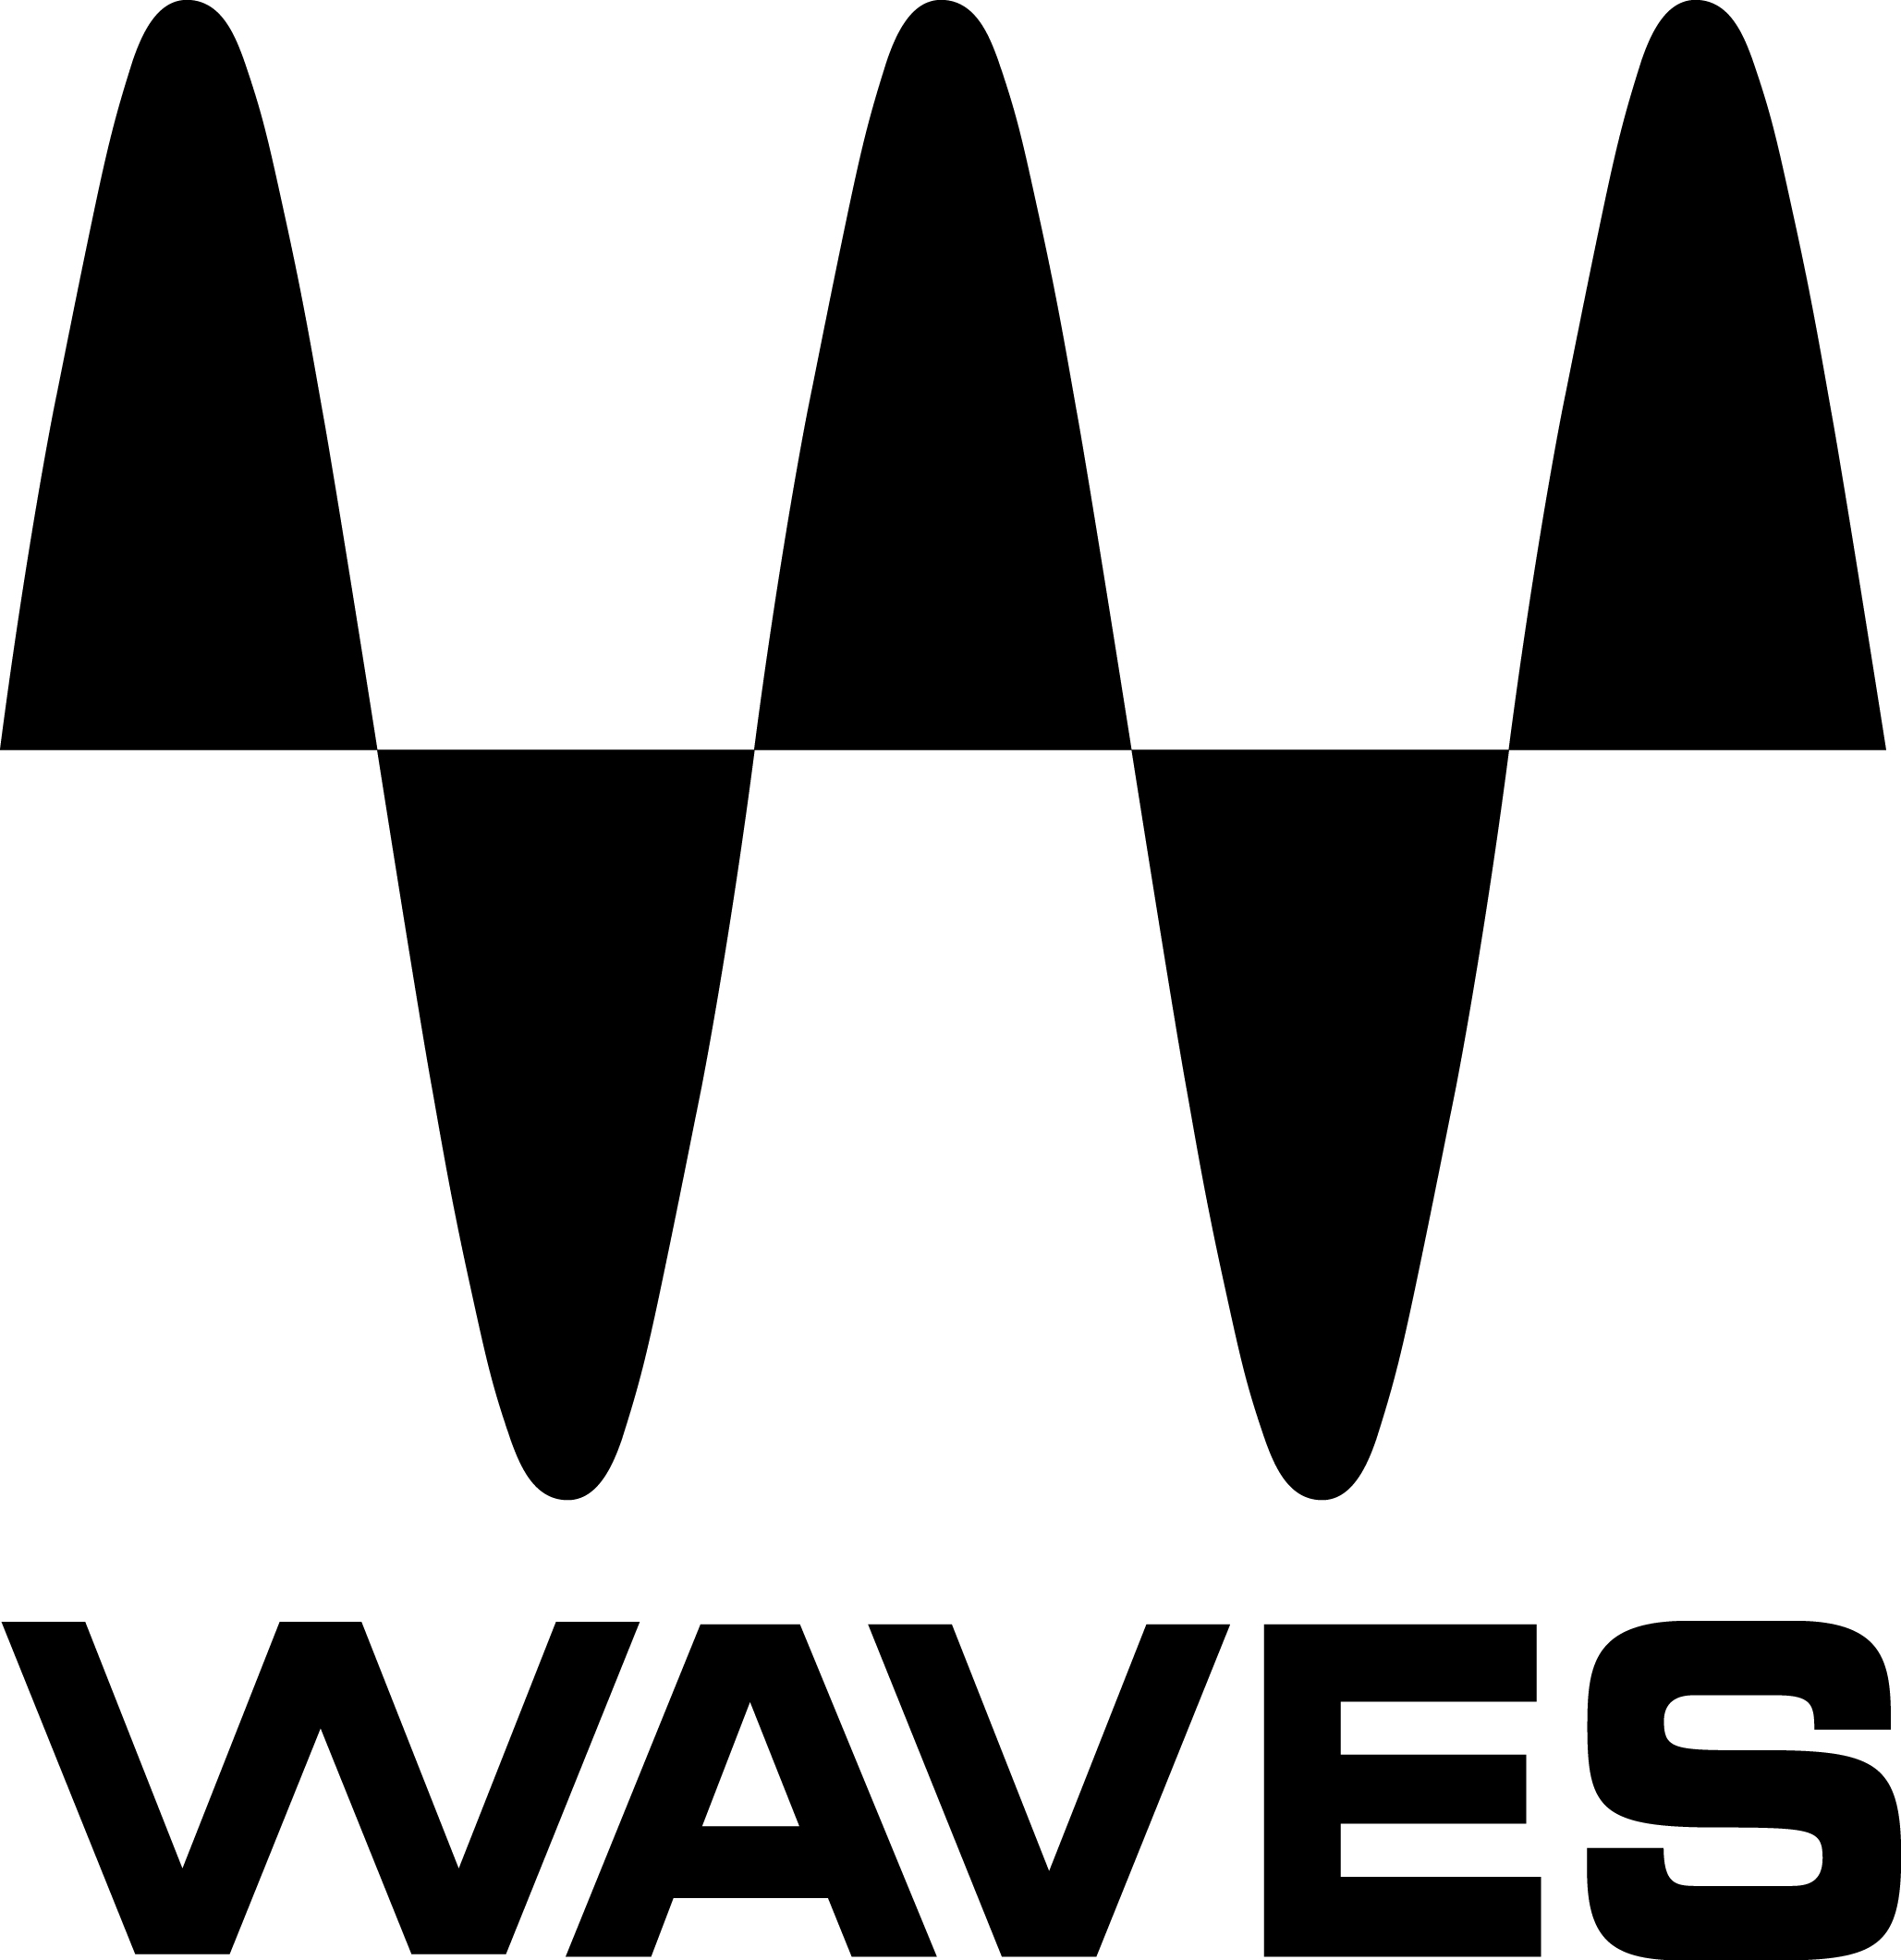 Additional Waves Serves In Stock